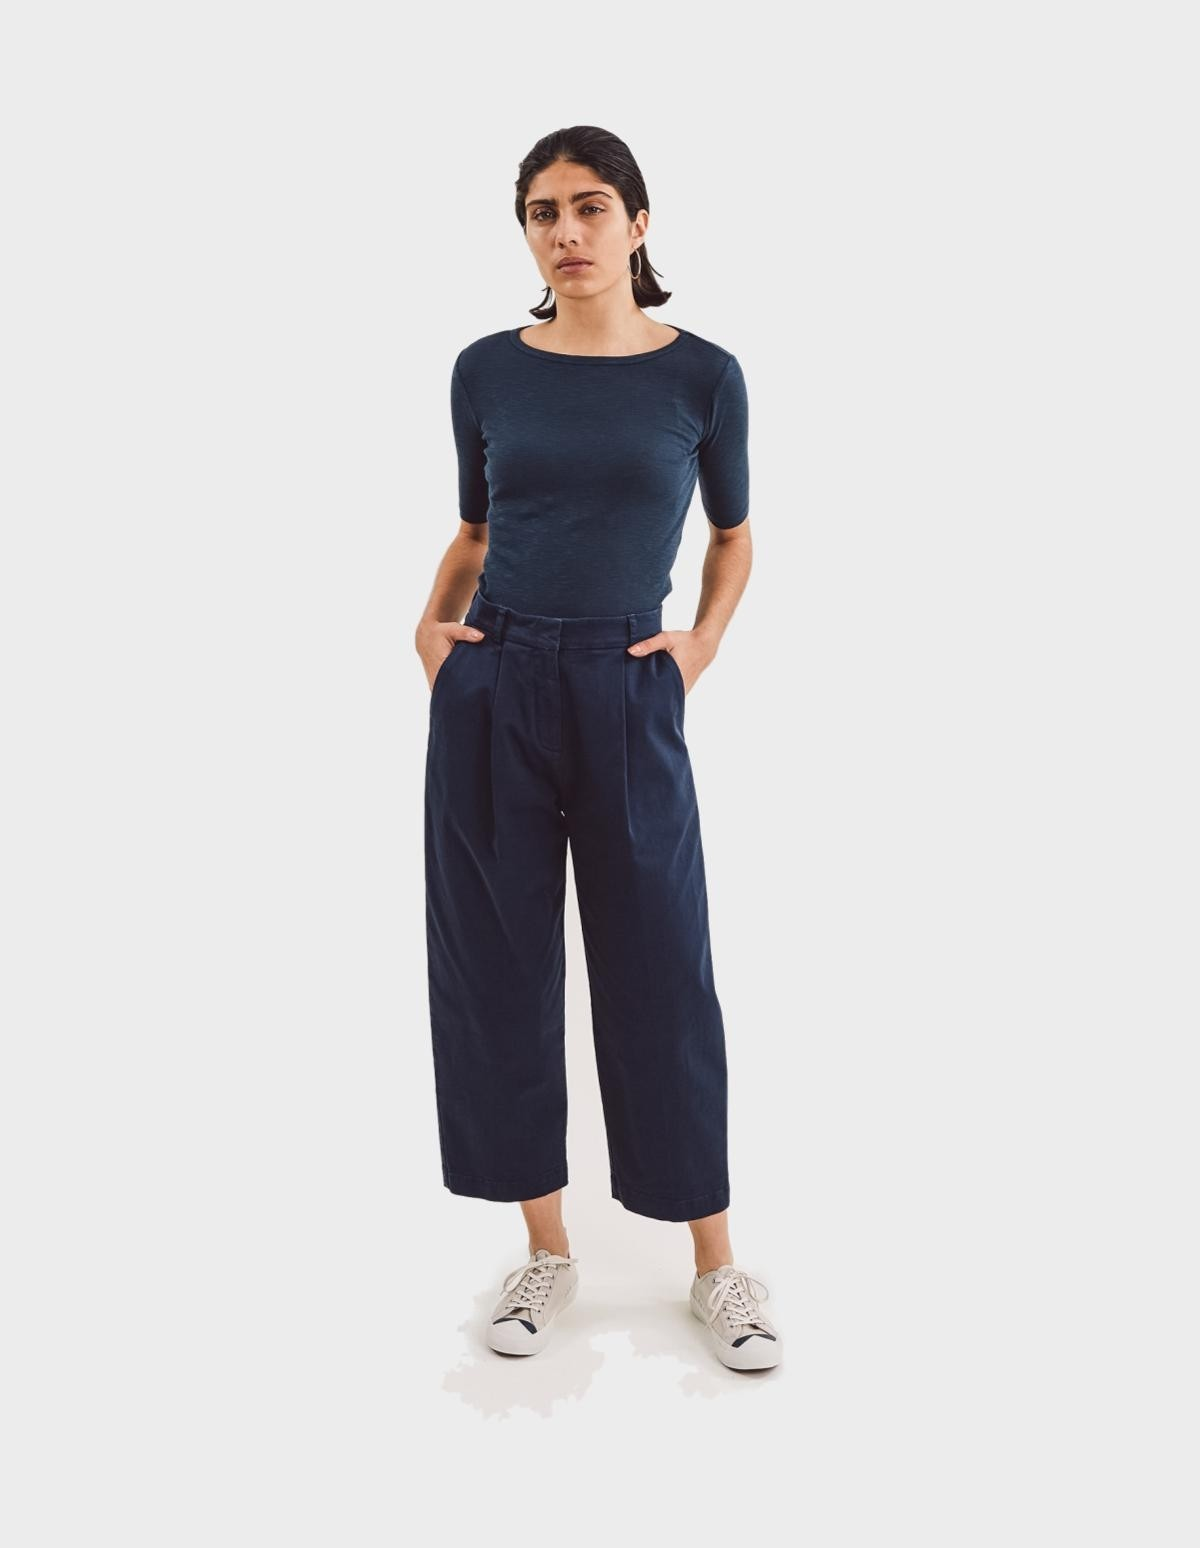 YMC You Must Create Market Trousers in Navy